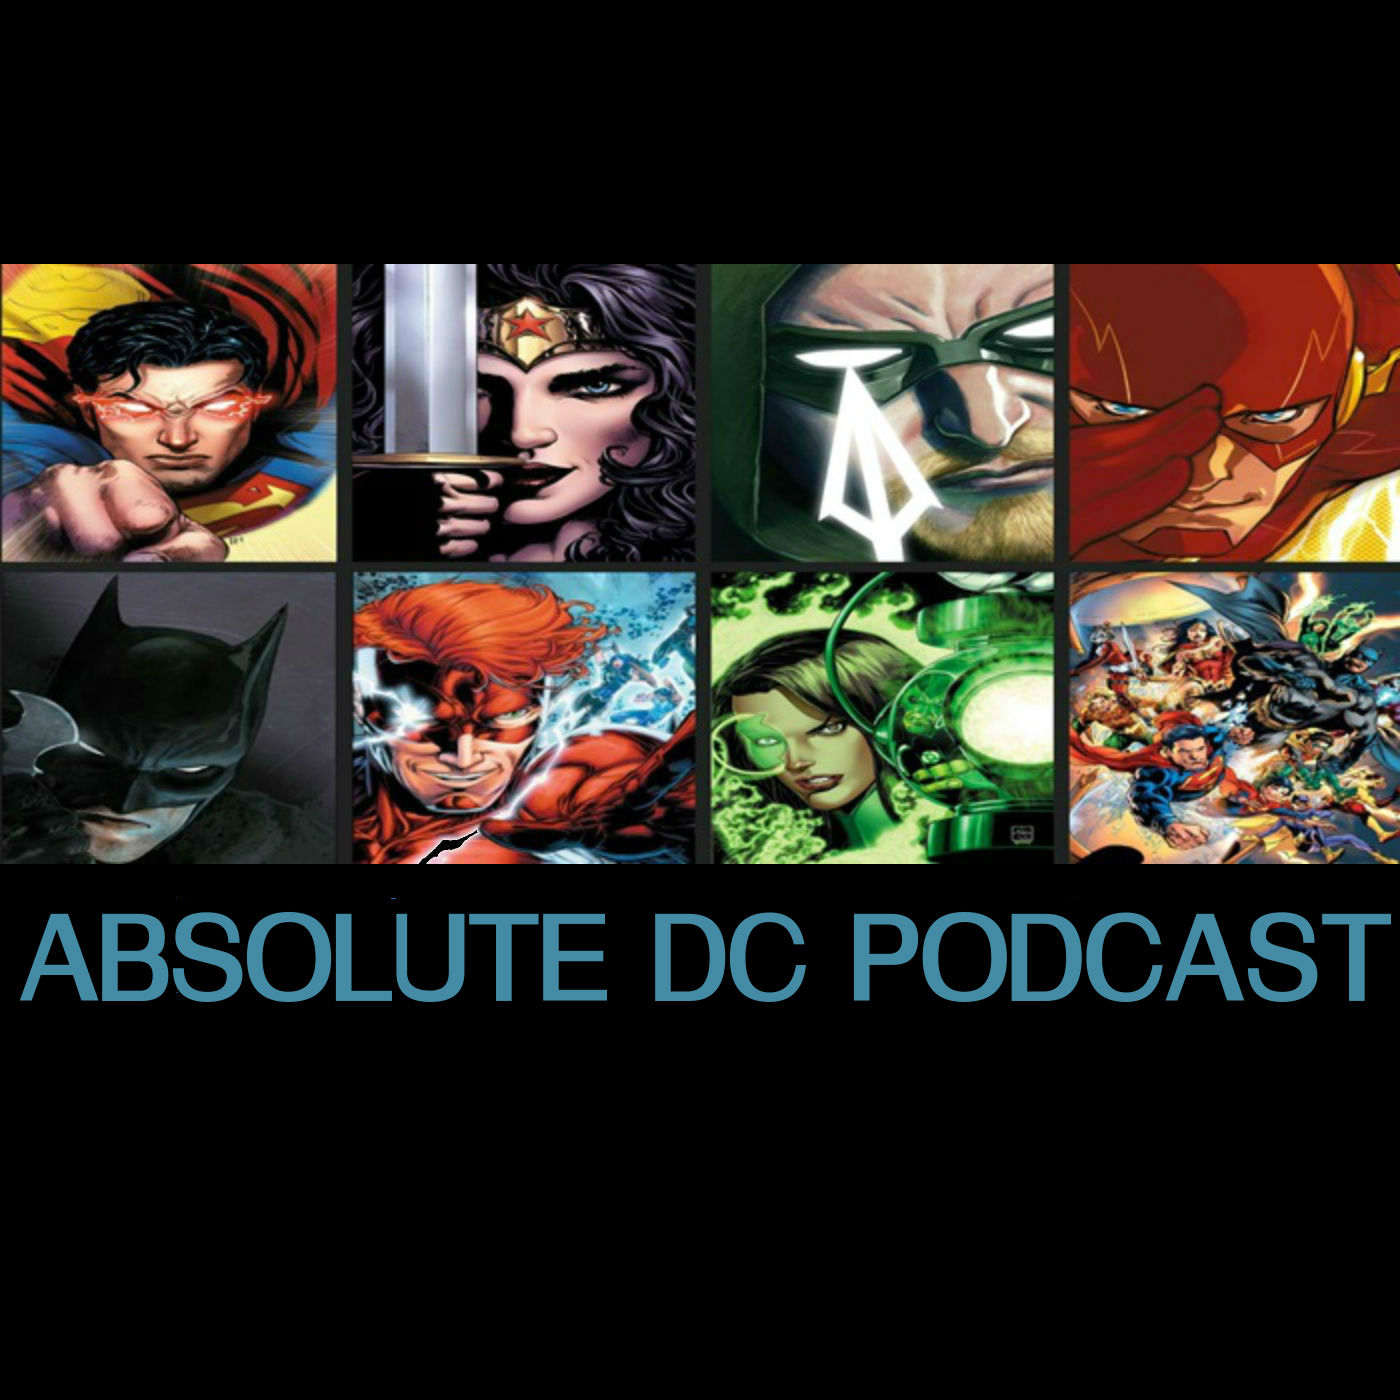 Absolute Dc Podcast Ep 80 The New Age Of Heroes Wraps Up